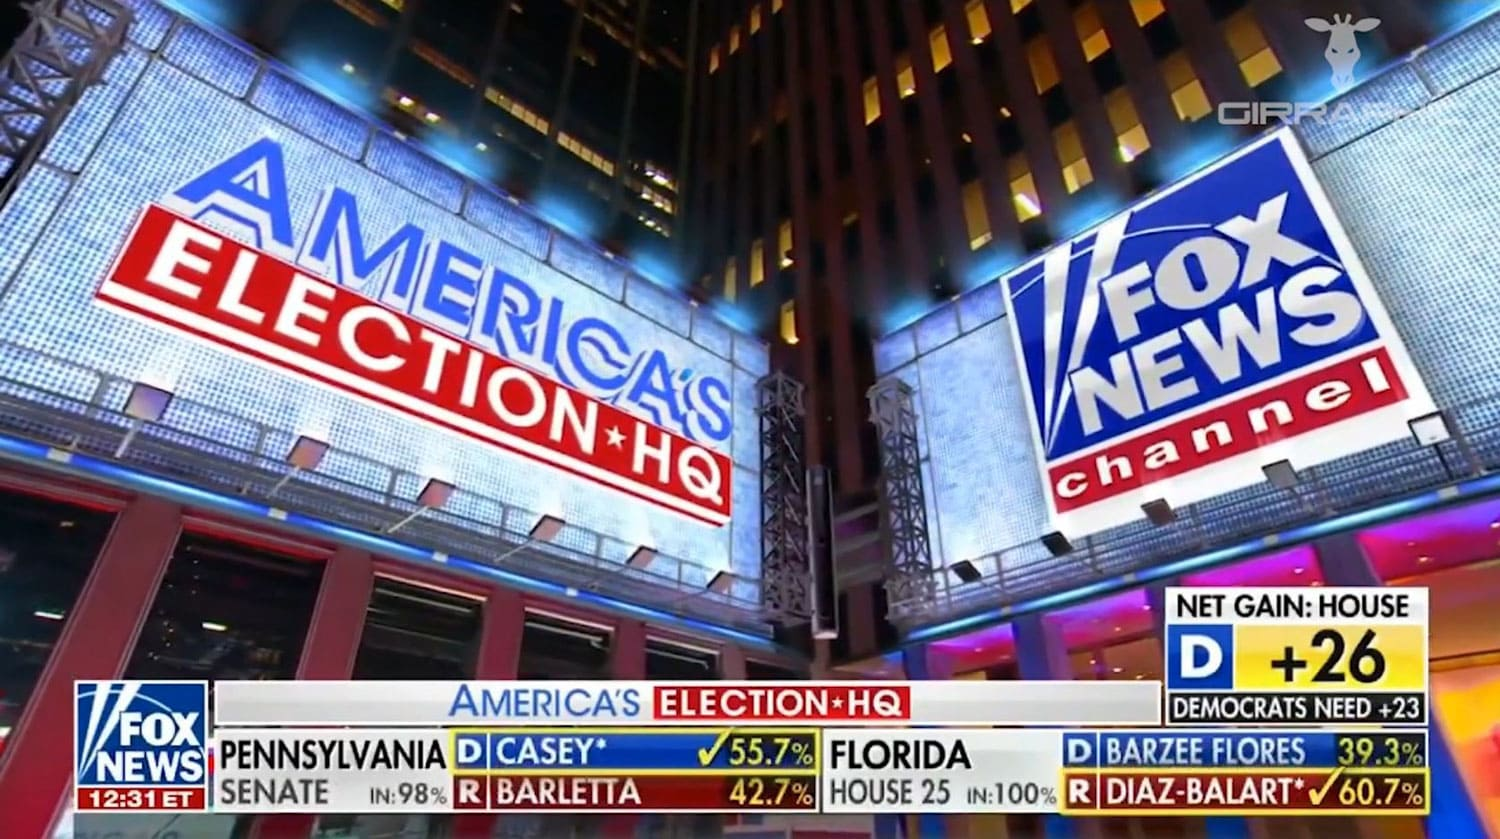 2016 Fox-News USA Election Girraphic